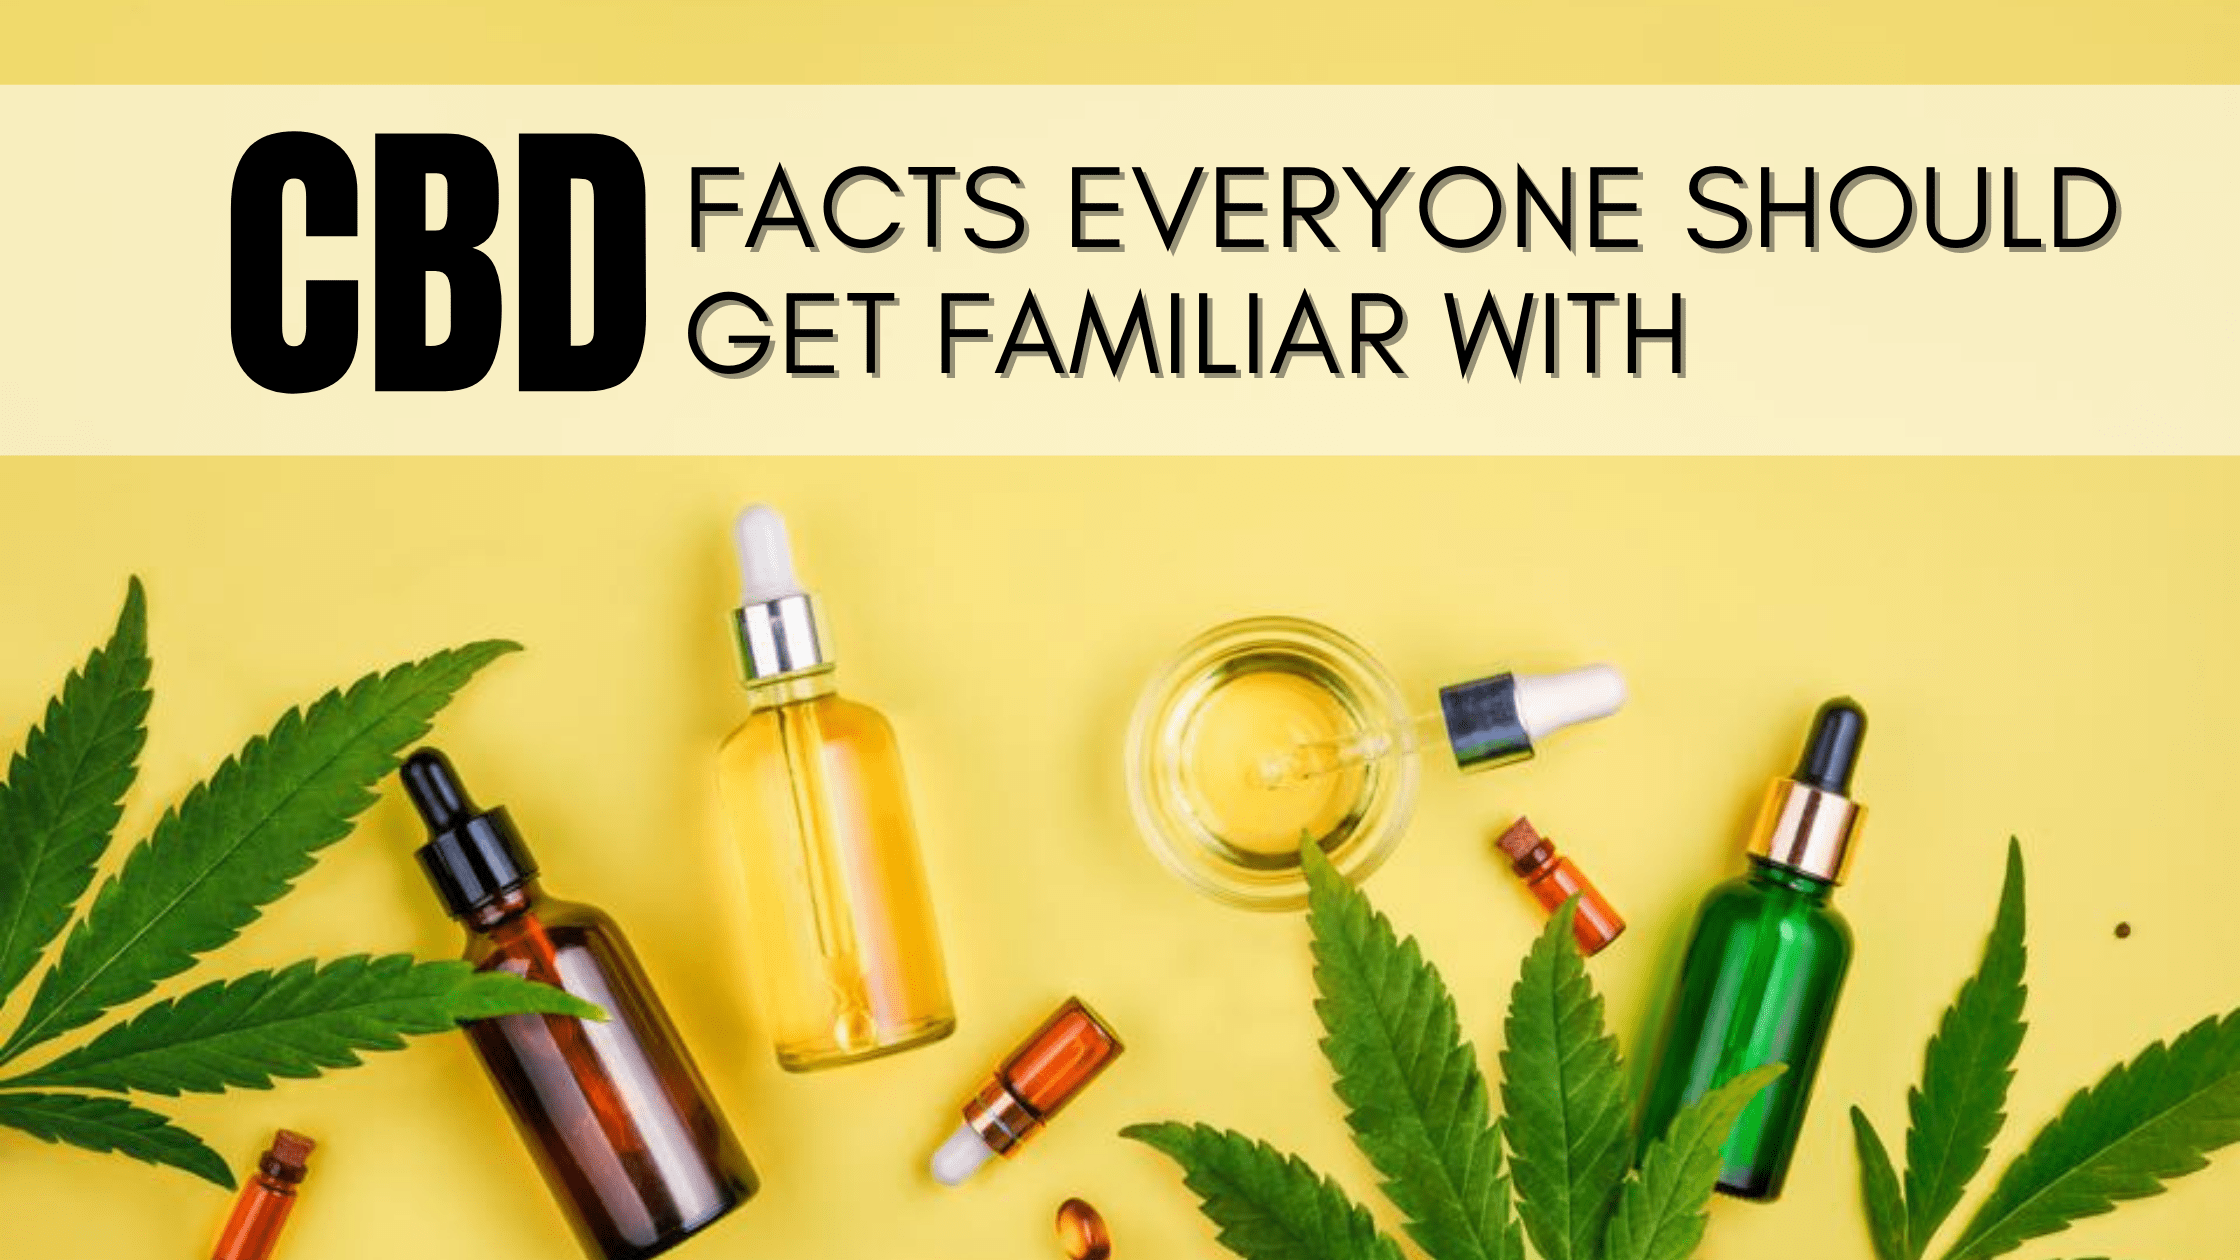 CBD Facts Everyone Should Get Familiar With